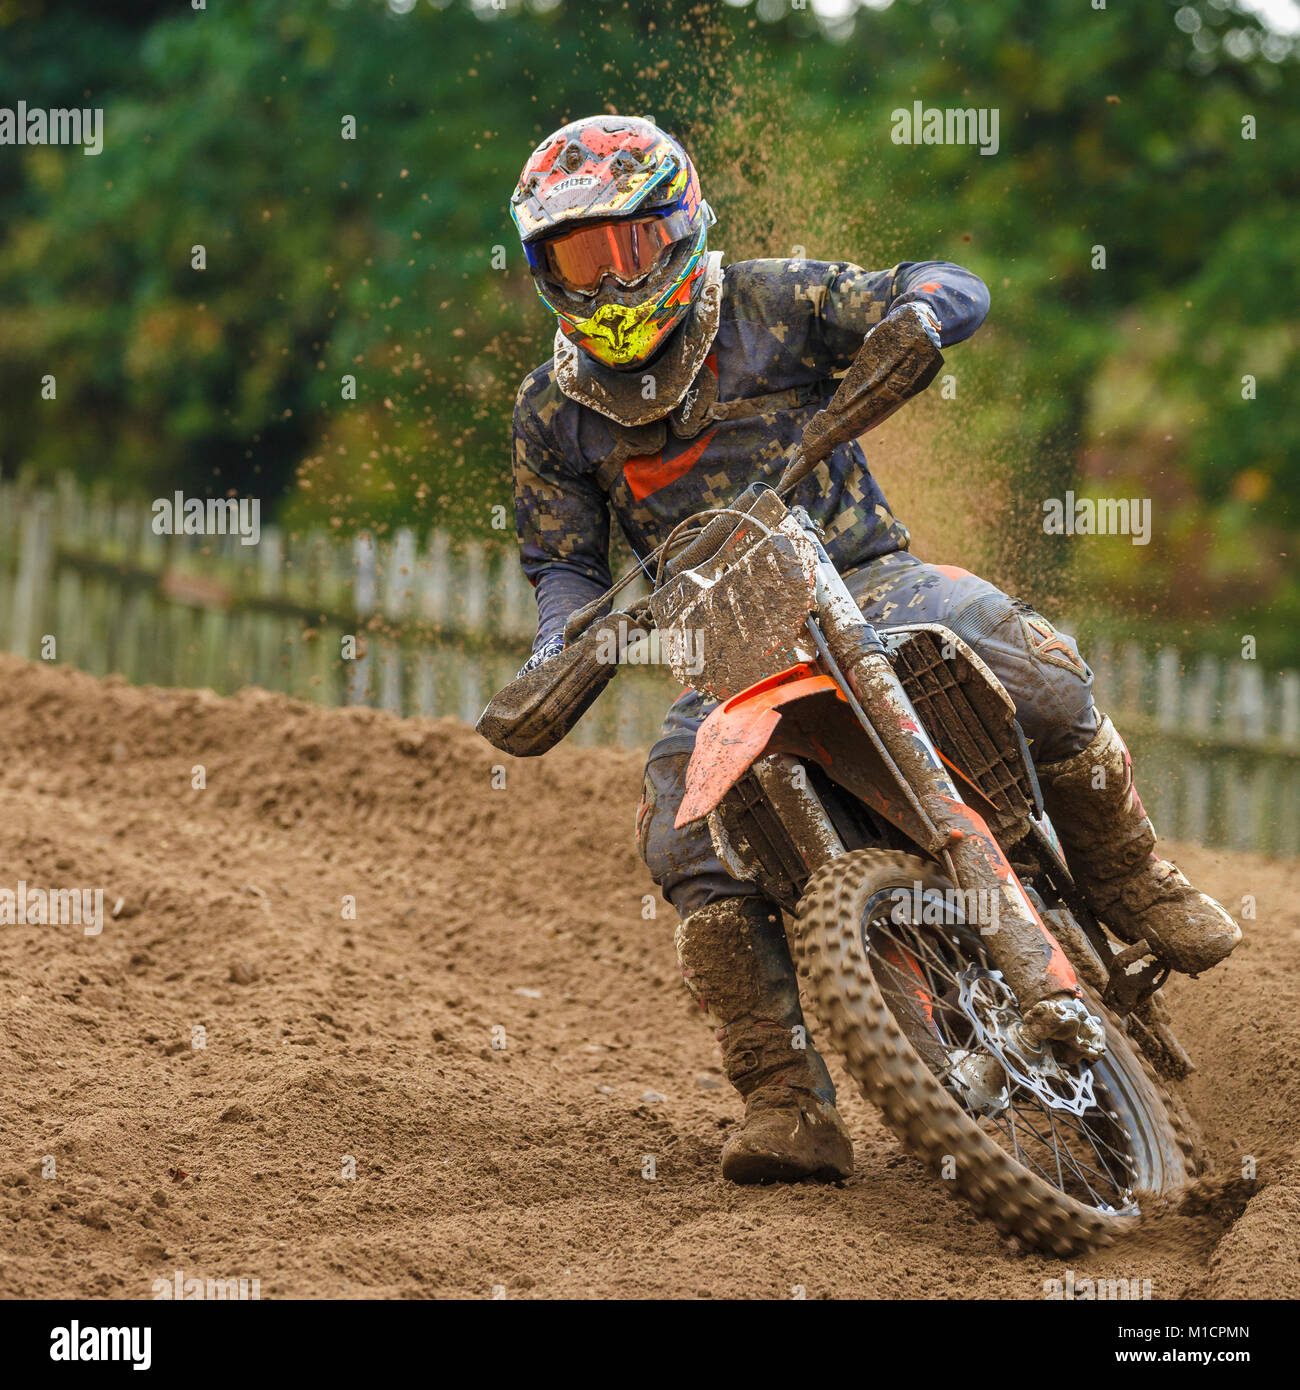 Daniel Patterson on the Patterson Accident Repairs KTM 350 at the NGR & ACU Eastern EVO Motocross Championships, - Stock Image